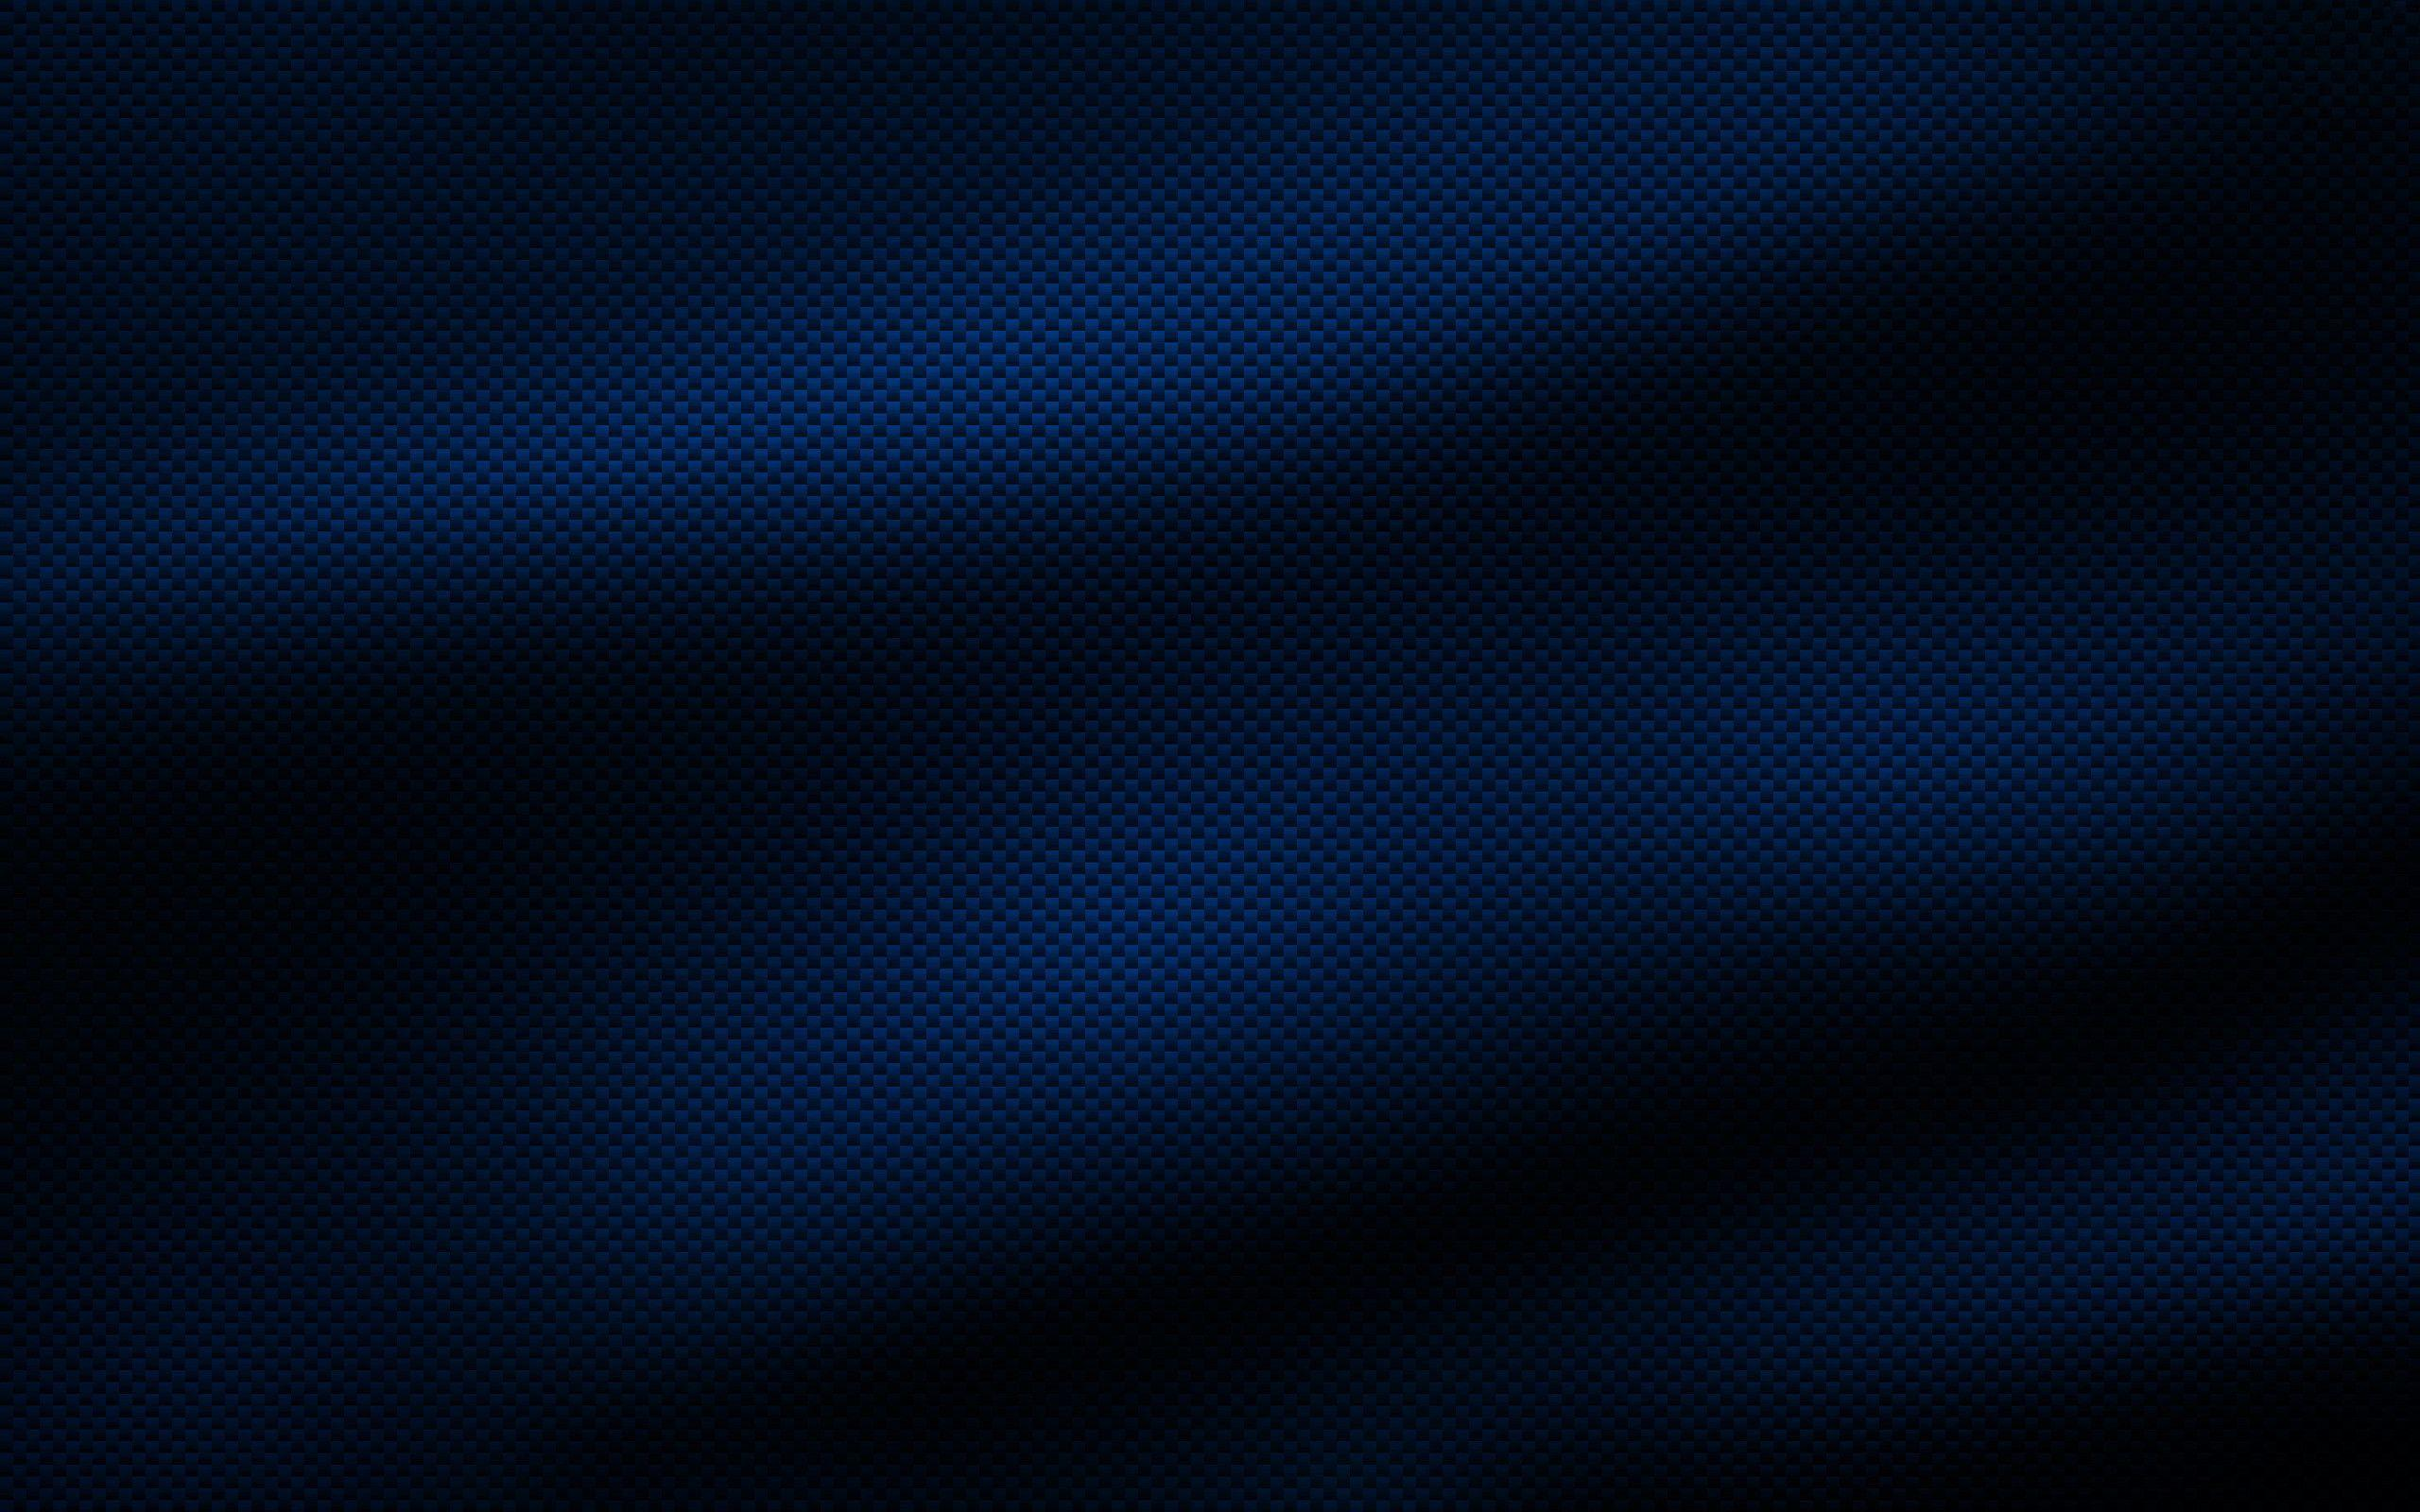 Blue Carbon Fiber Wallpapers Wide or HD